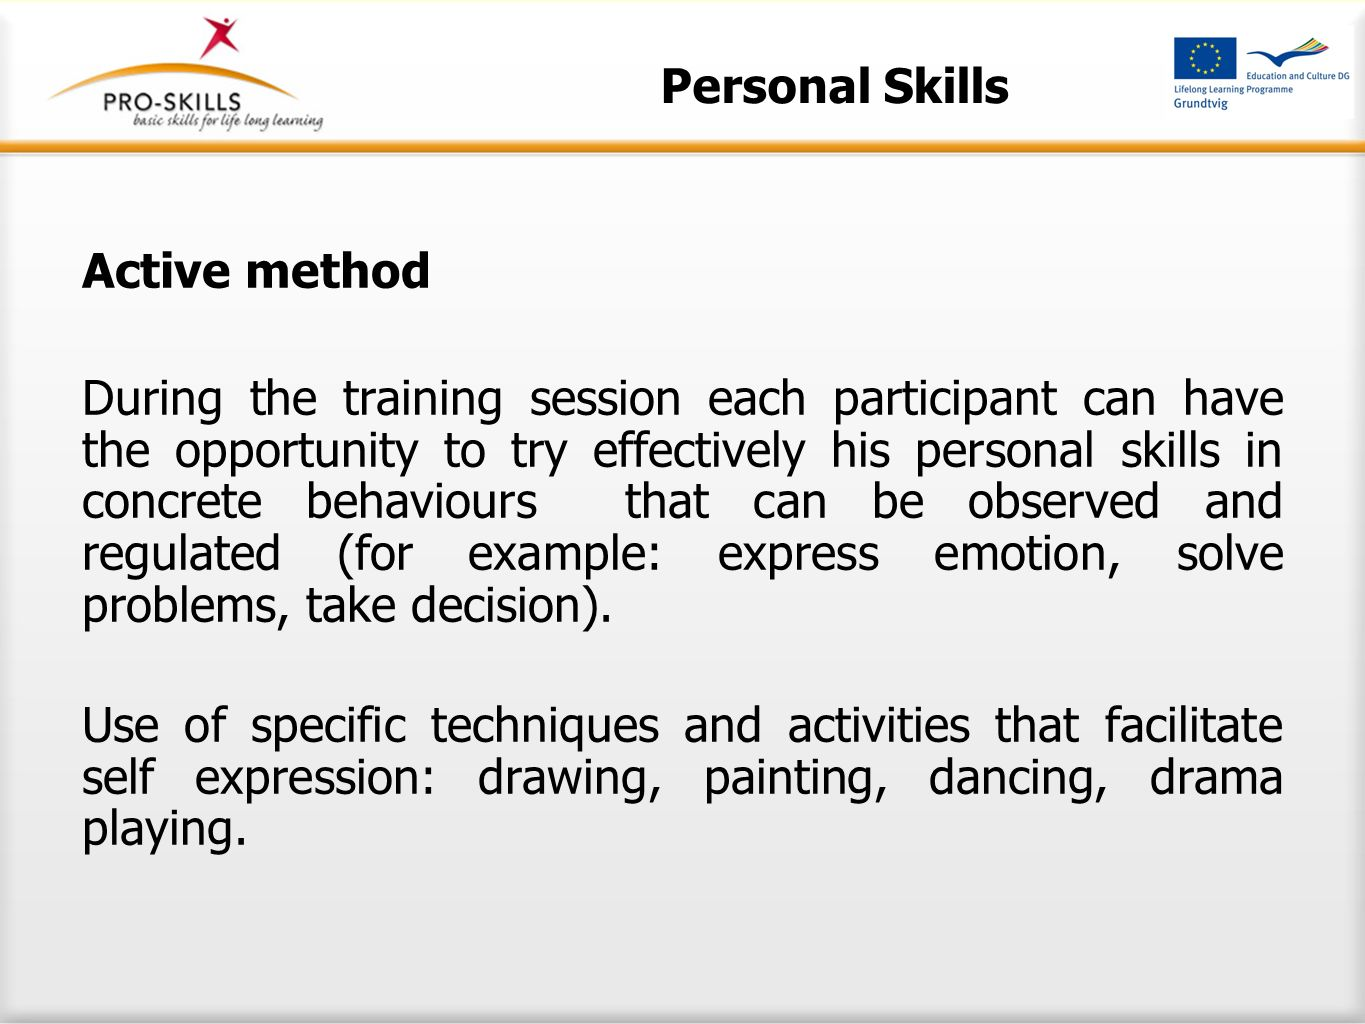 Active method During the training session each participant can have the opportunity to try effectively his personal skills in concrete behaviours that can be observed and regulated (for example: express emotion, solve problems, take decision).